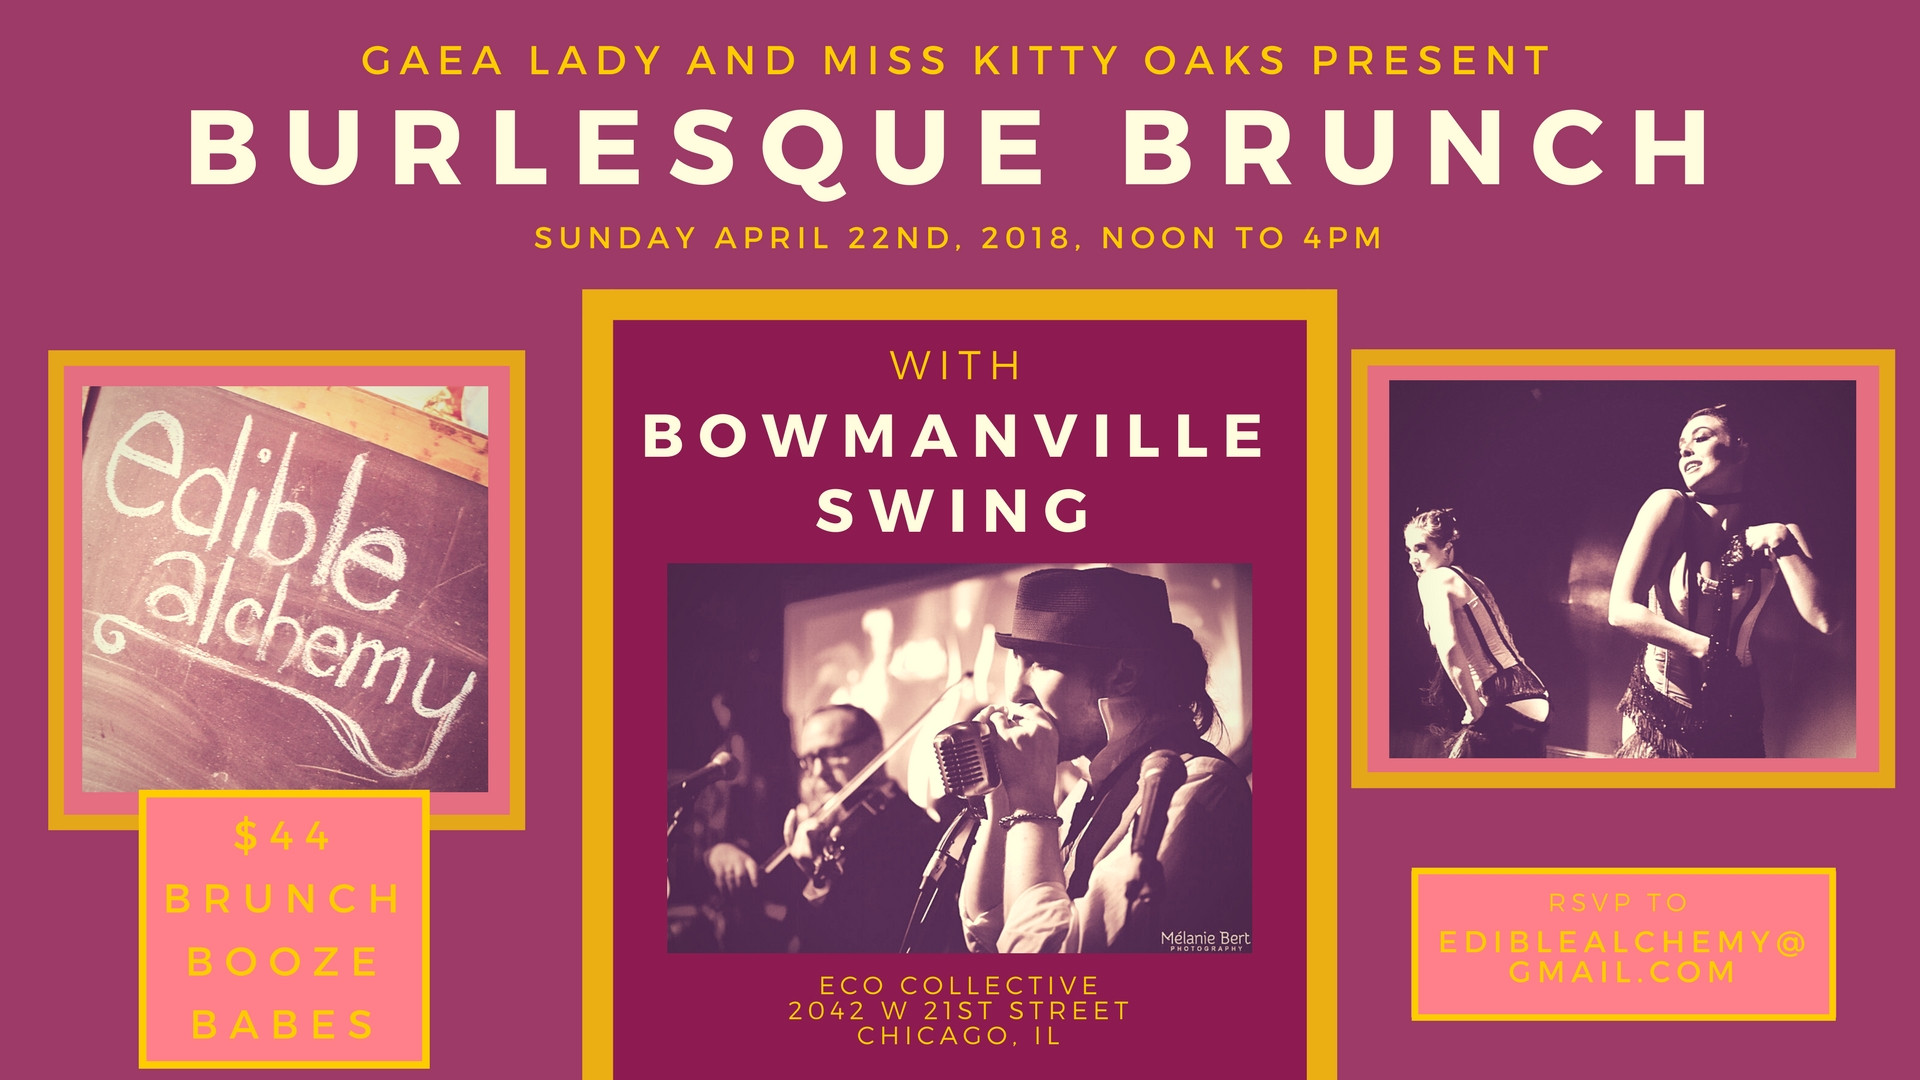 Burlesque Brunch with Bowmanville Swing